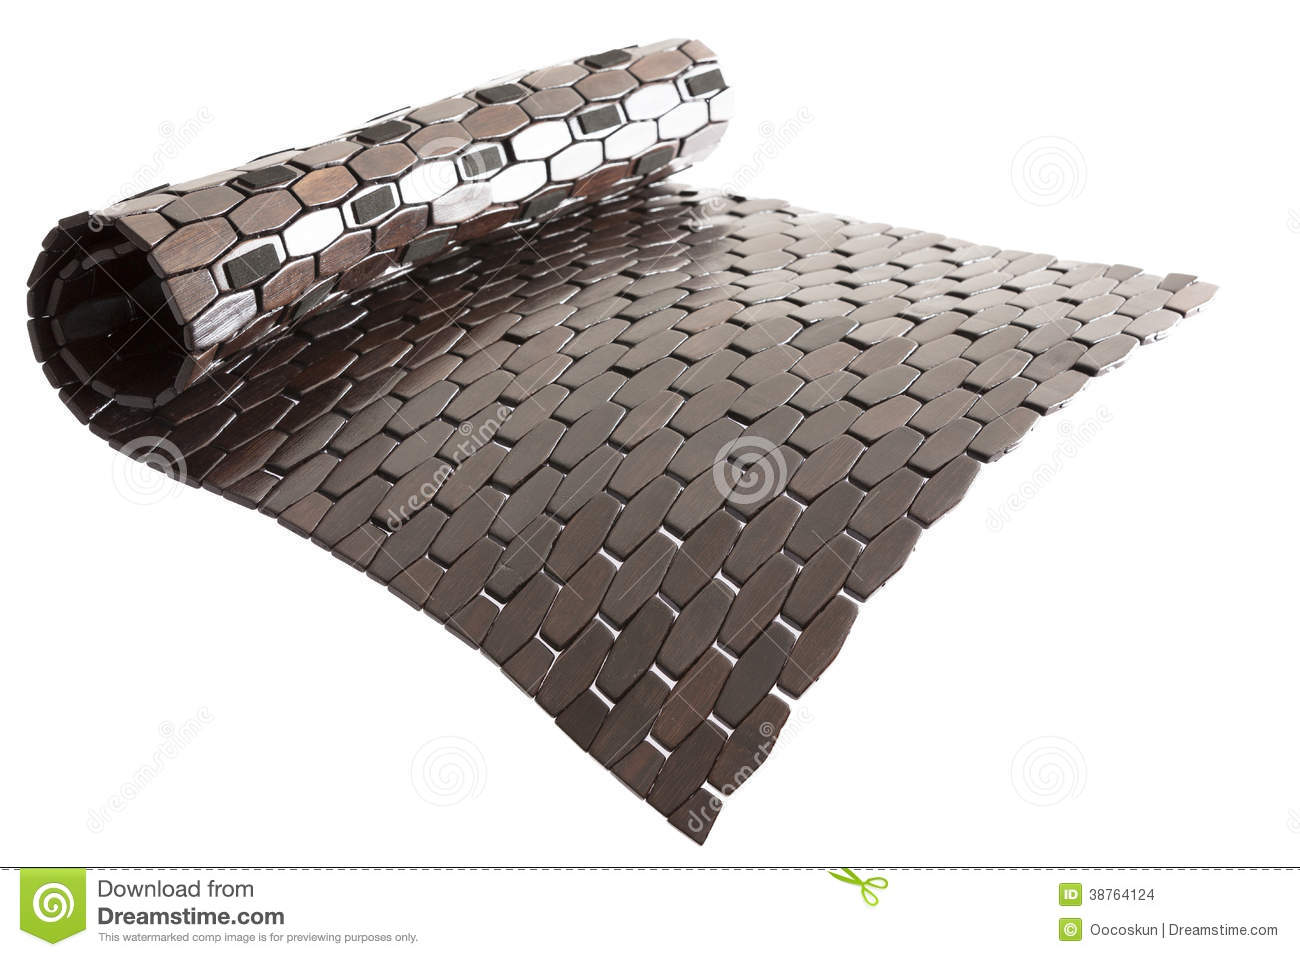 rolled black threshold bamboo bath mat stock images - image: 38764124